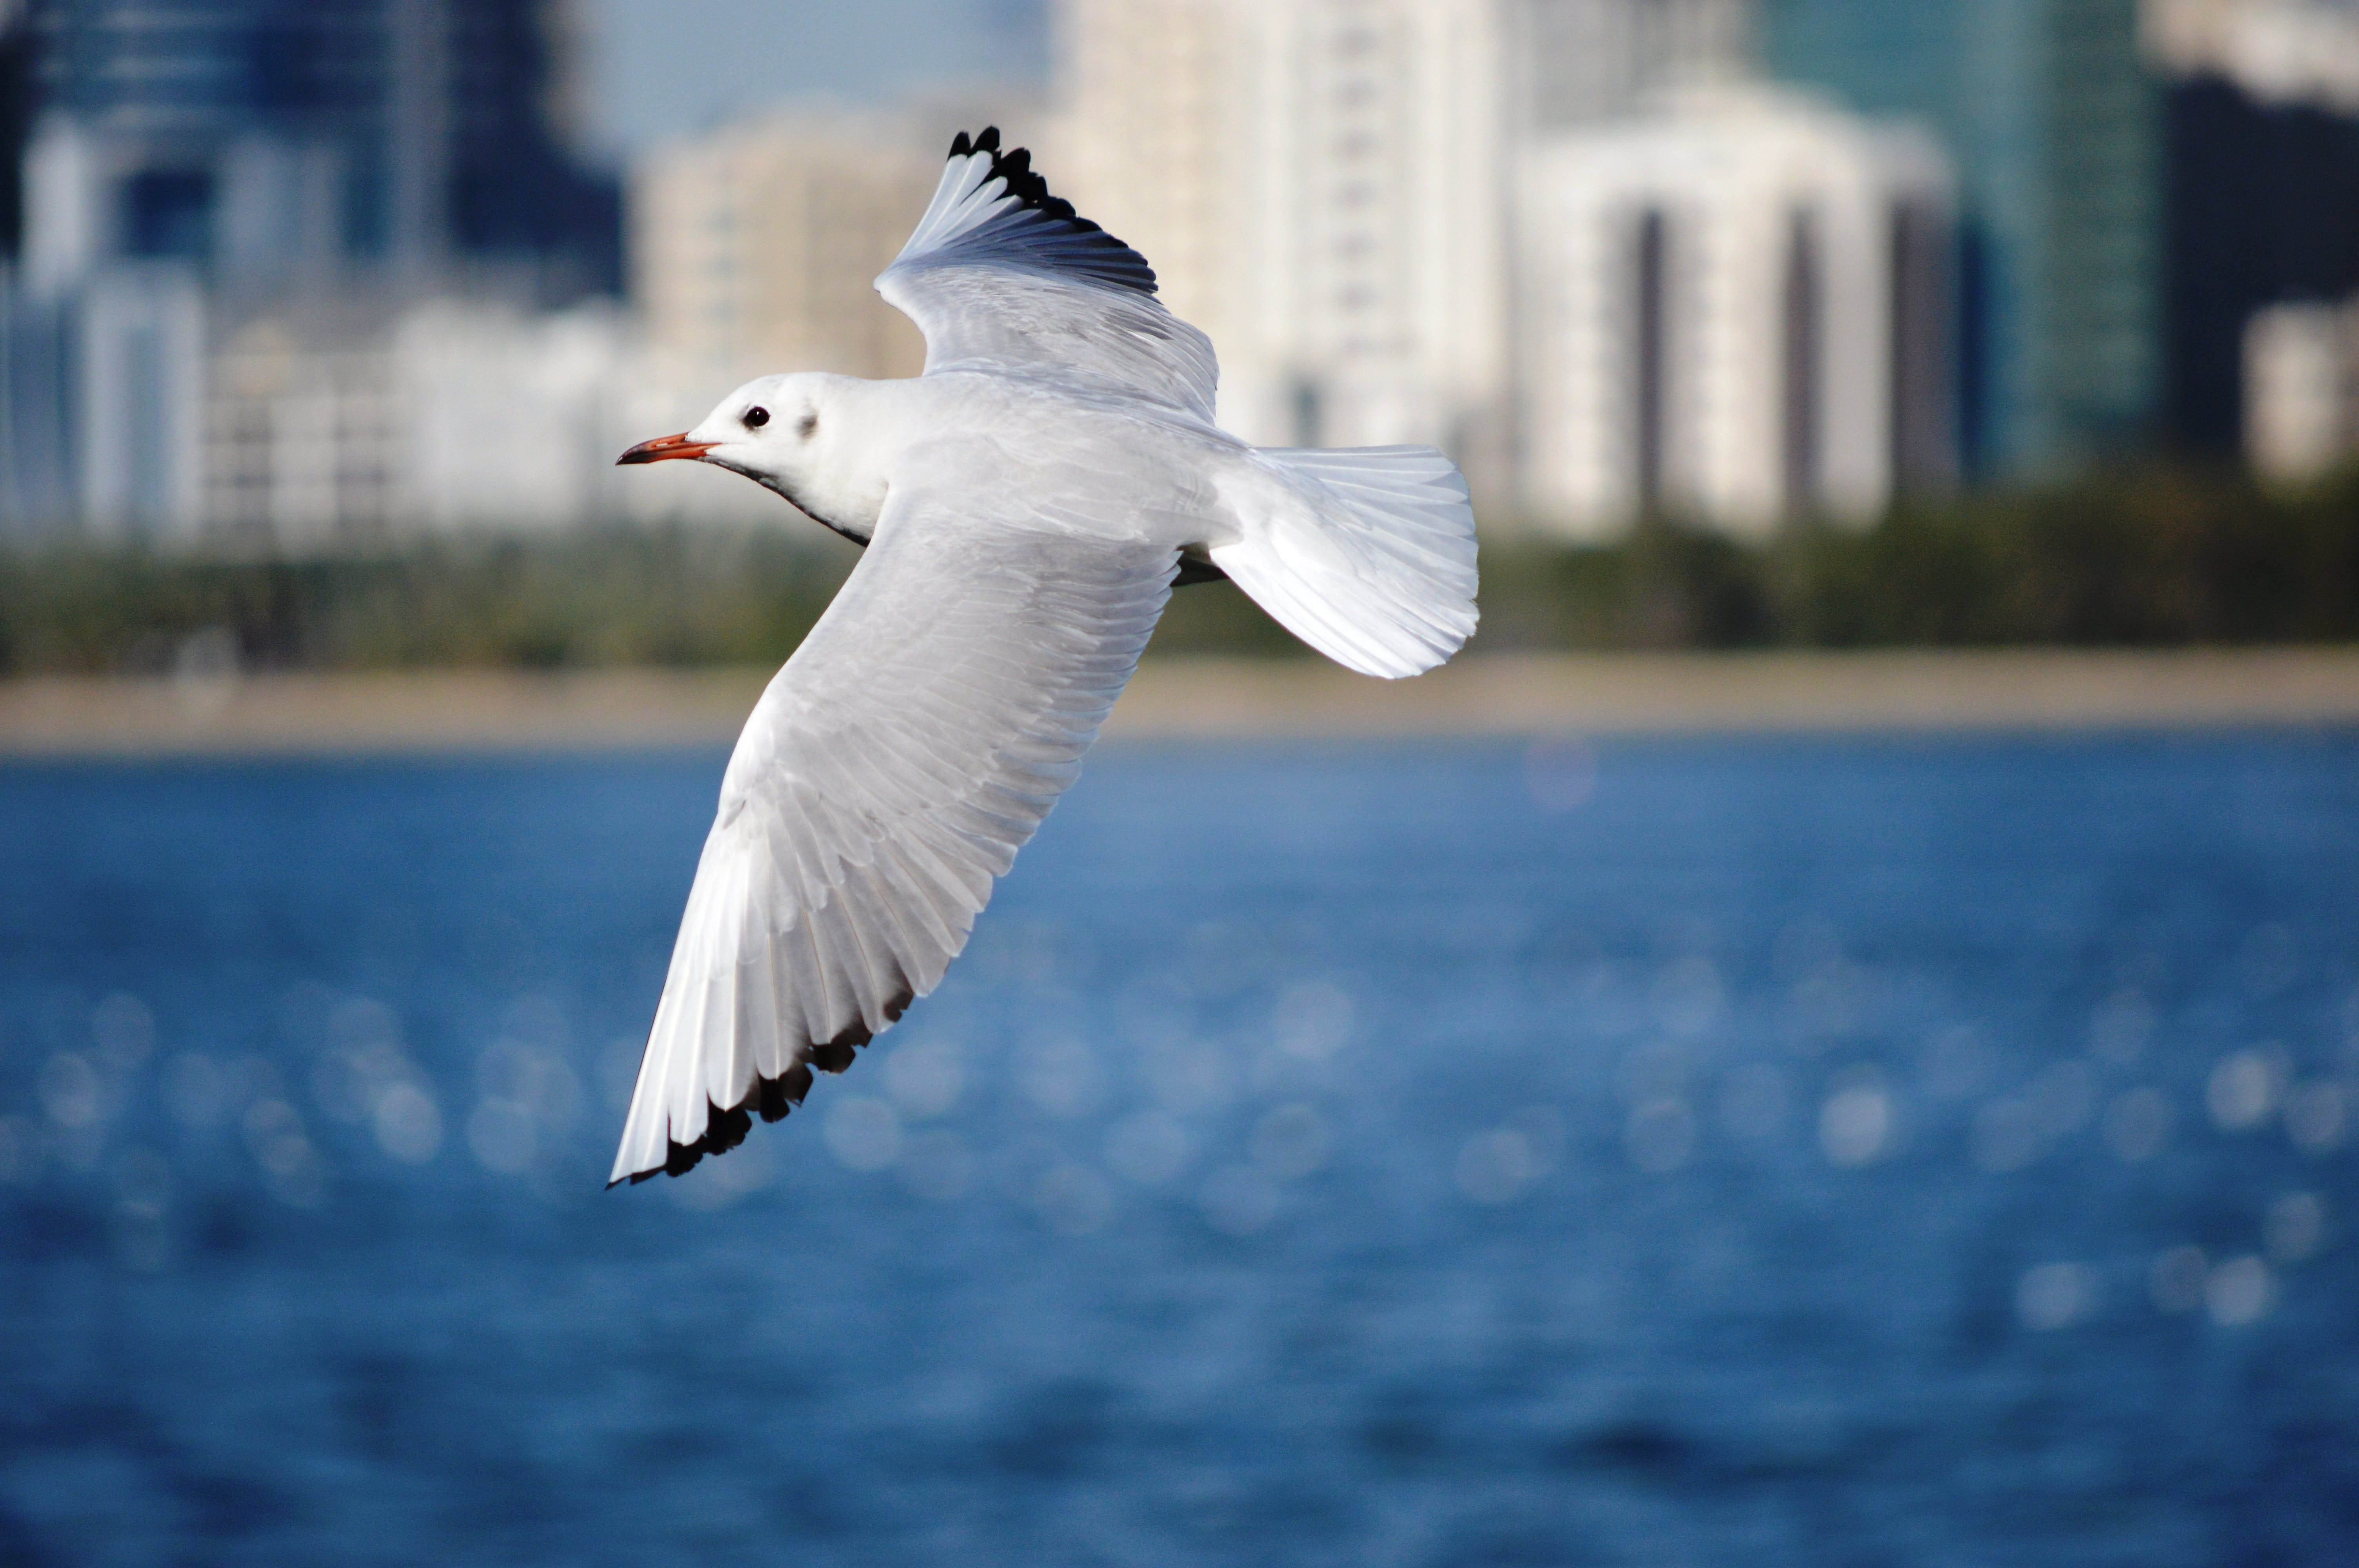 White Bird Flying on Top of Water